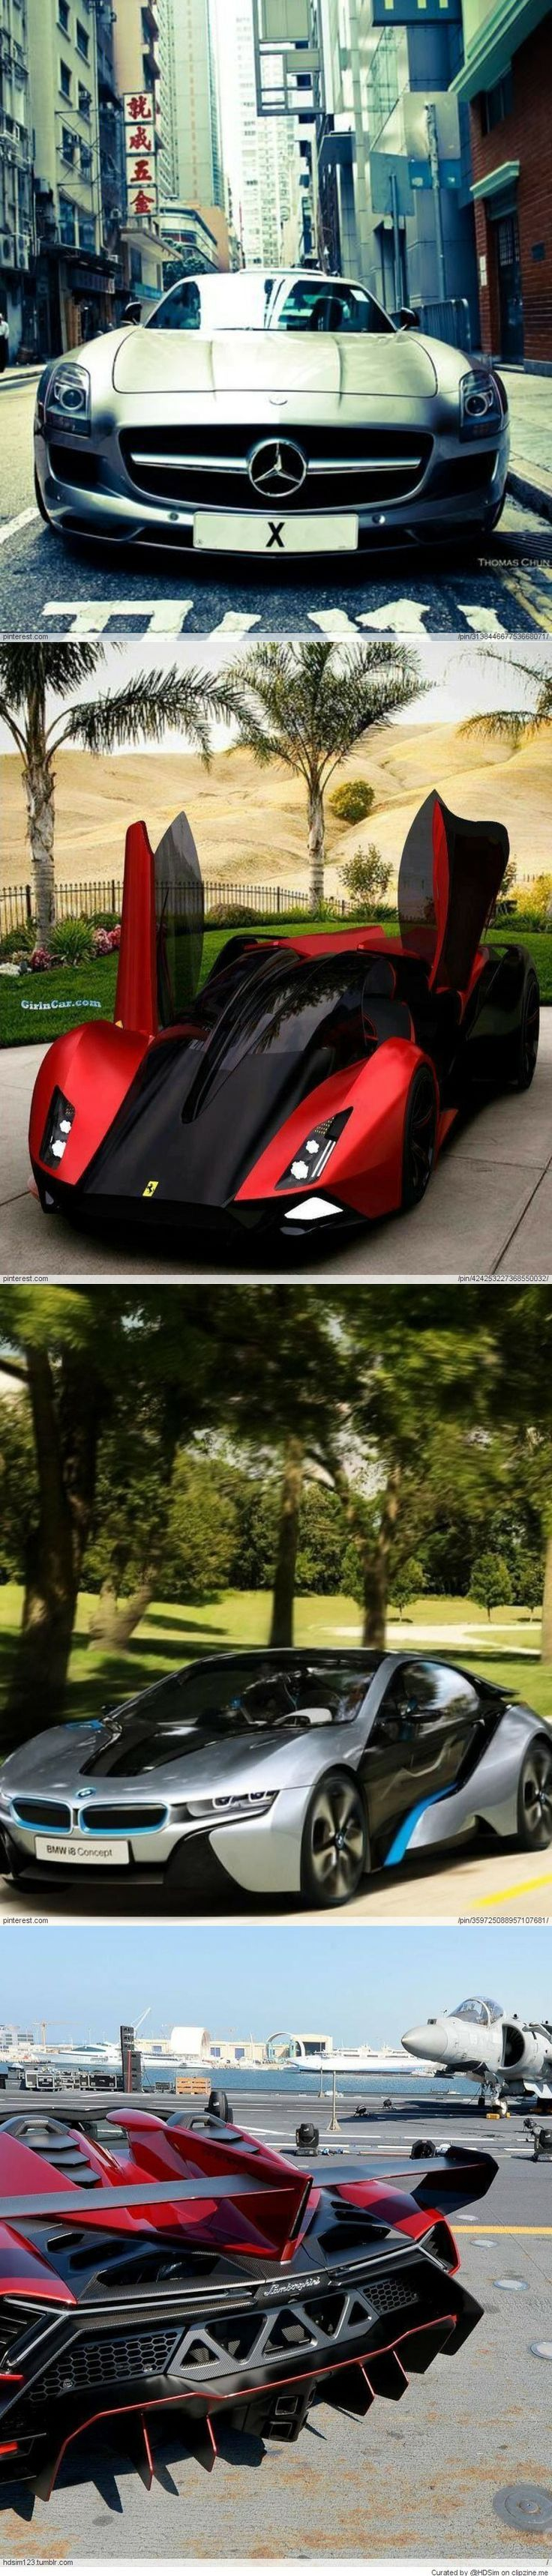 54 best Cars images on Pinterest